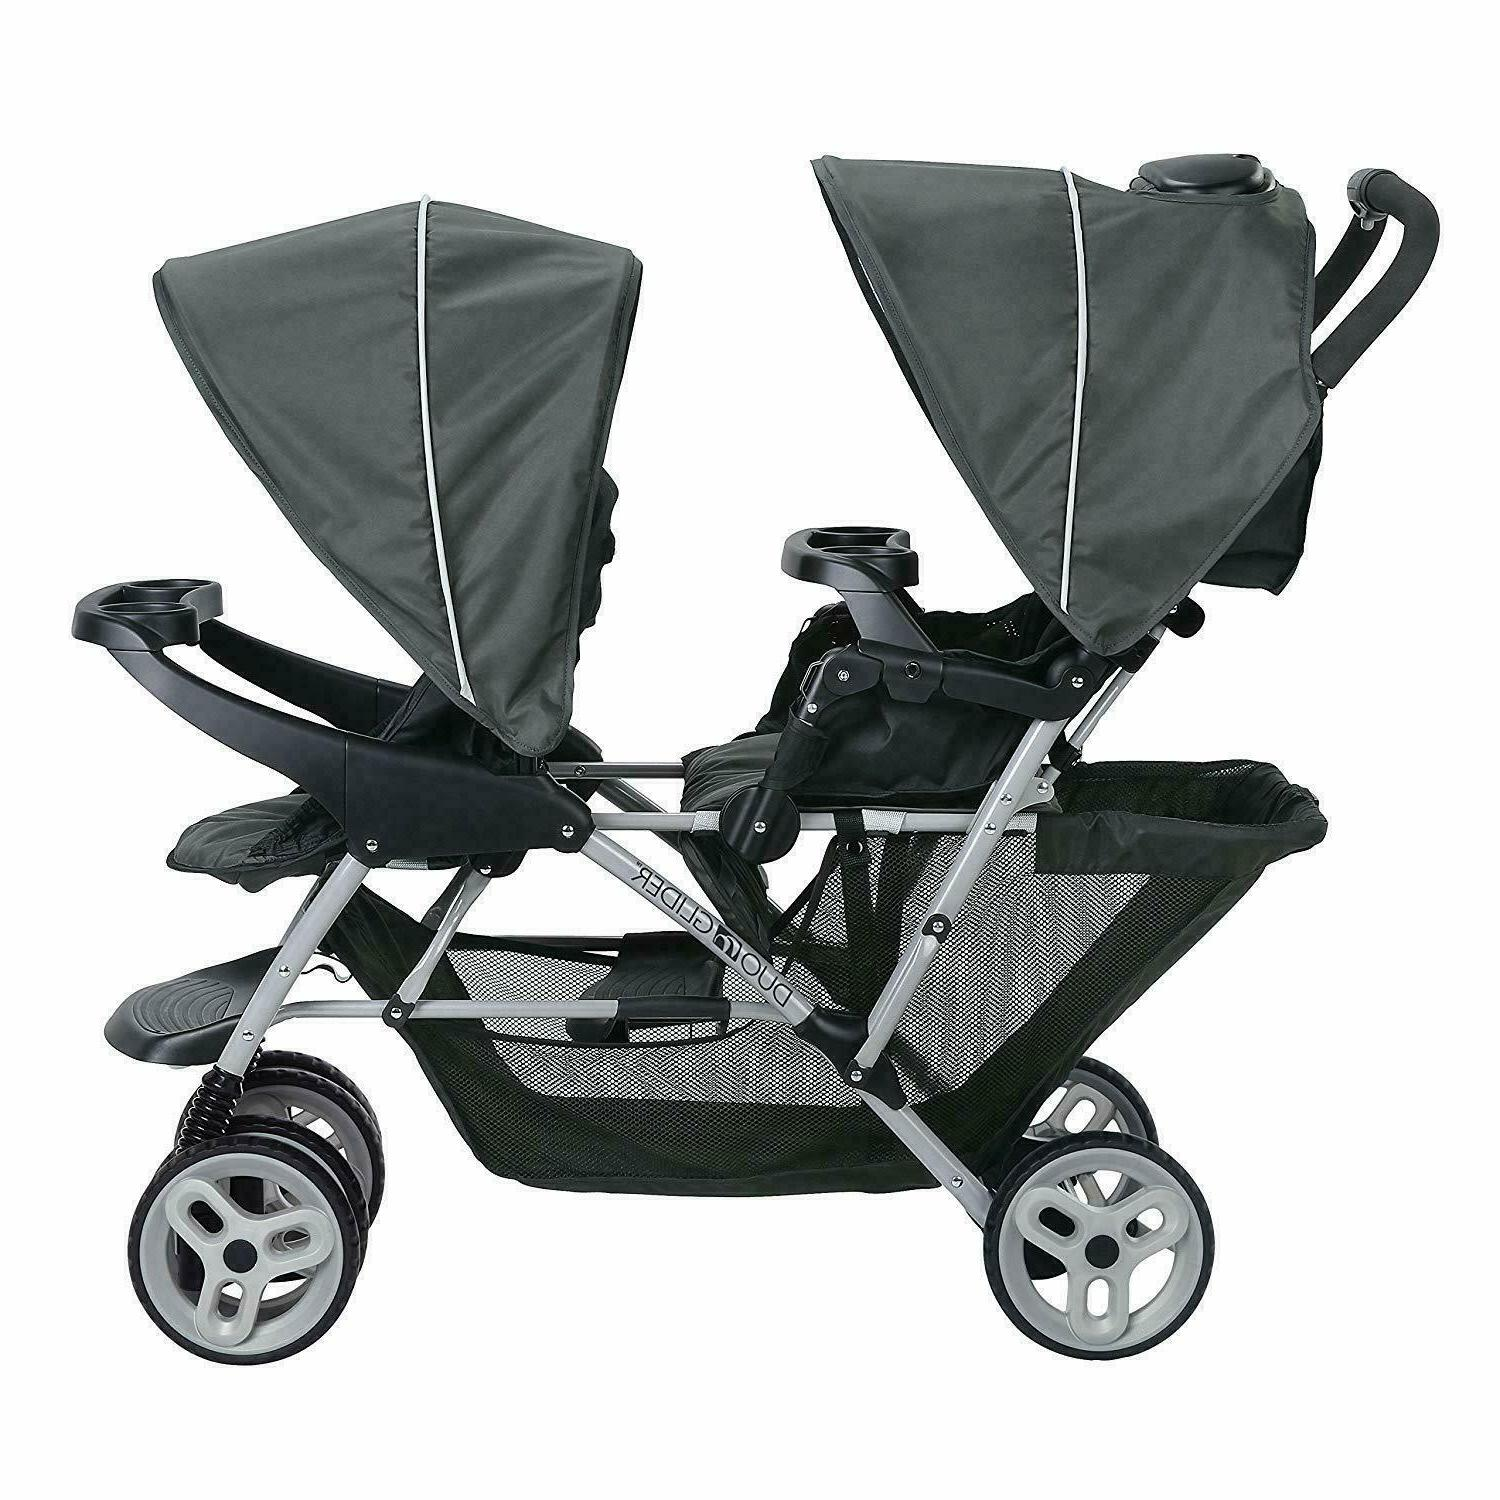 GRACO INFANT DOUBLE STROLLER FOLDABLE BUGGY WITH TANDEM